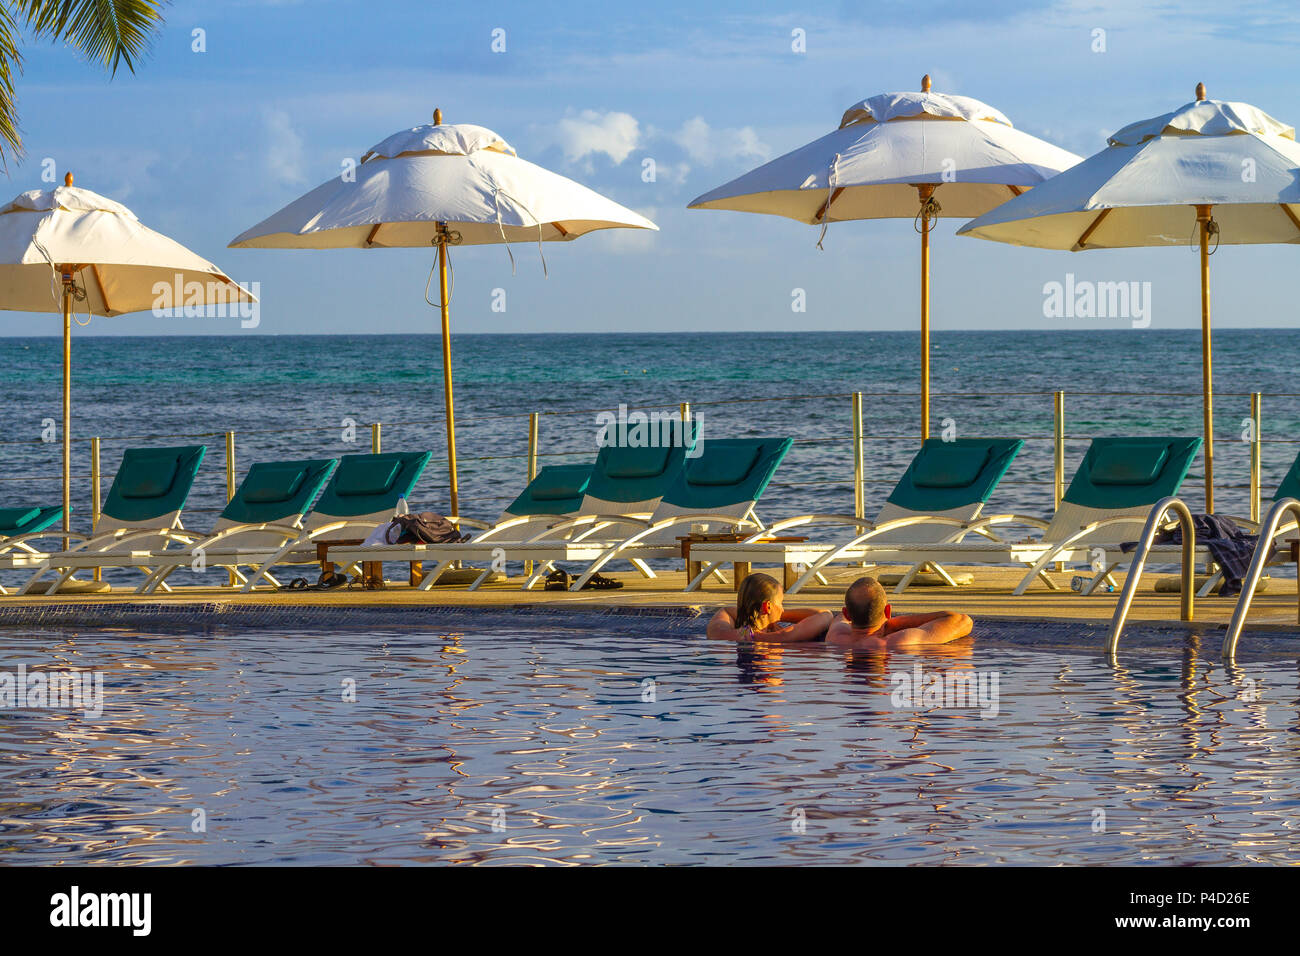 Praslin, Seychelles - unidentified guests at the Hotel Coco de Mer relax in a seaside pool image with copy space in landscape format - Stock Image